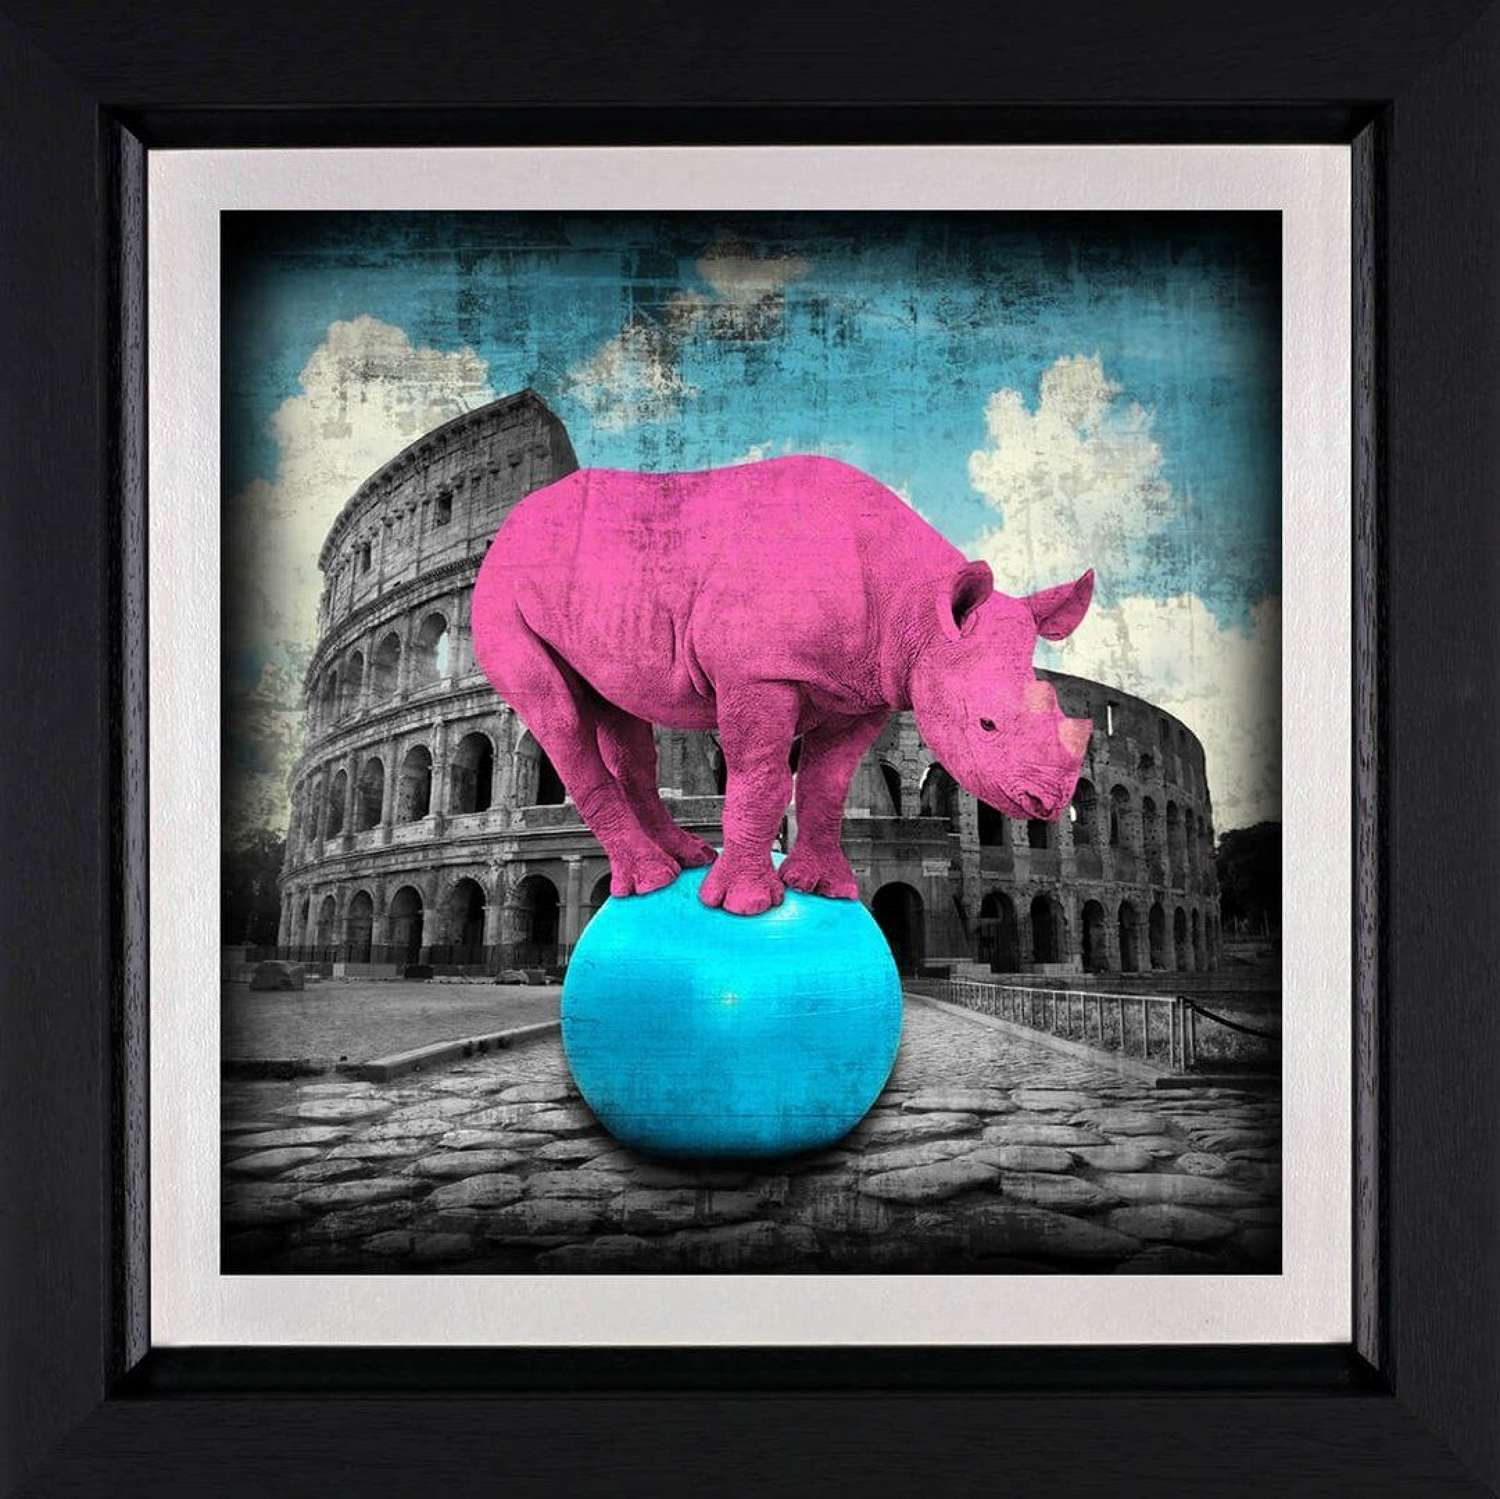 The Main Attraction - Framed Art Print by Lars Tunebo